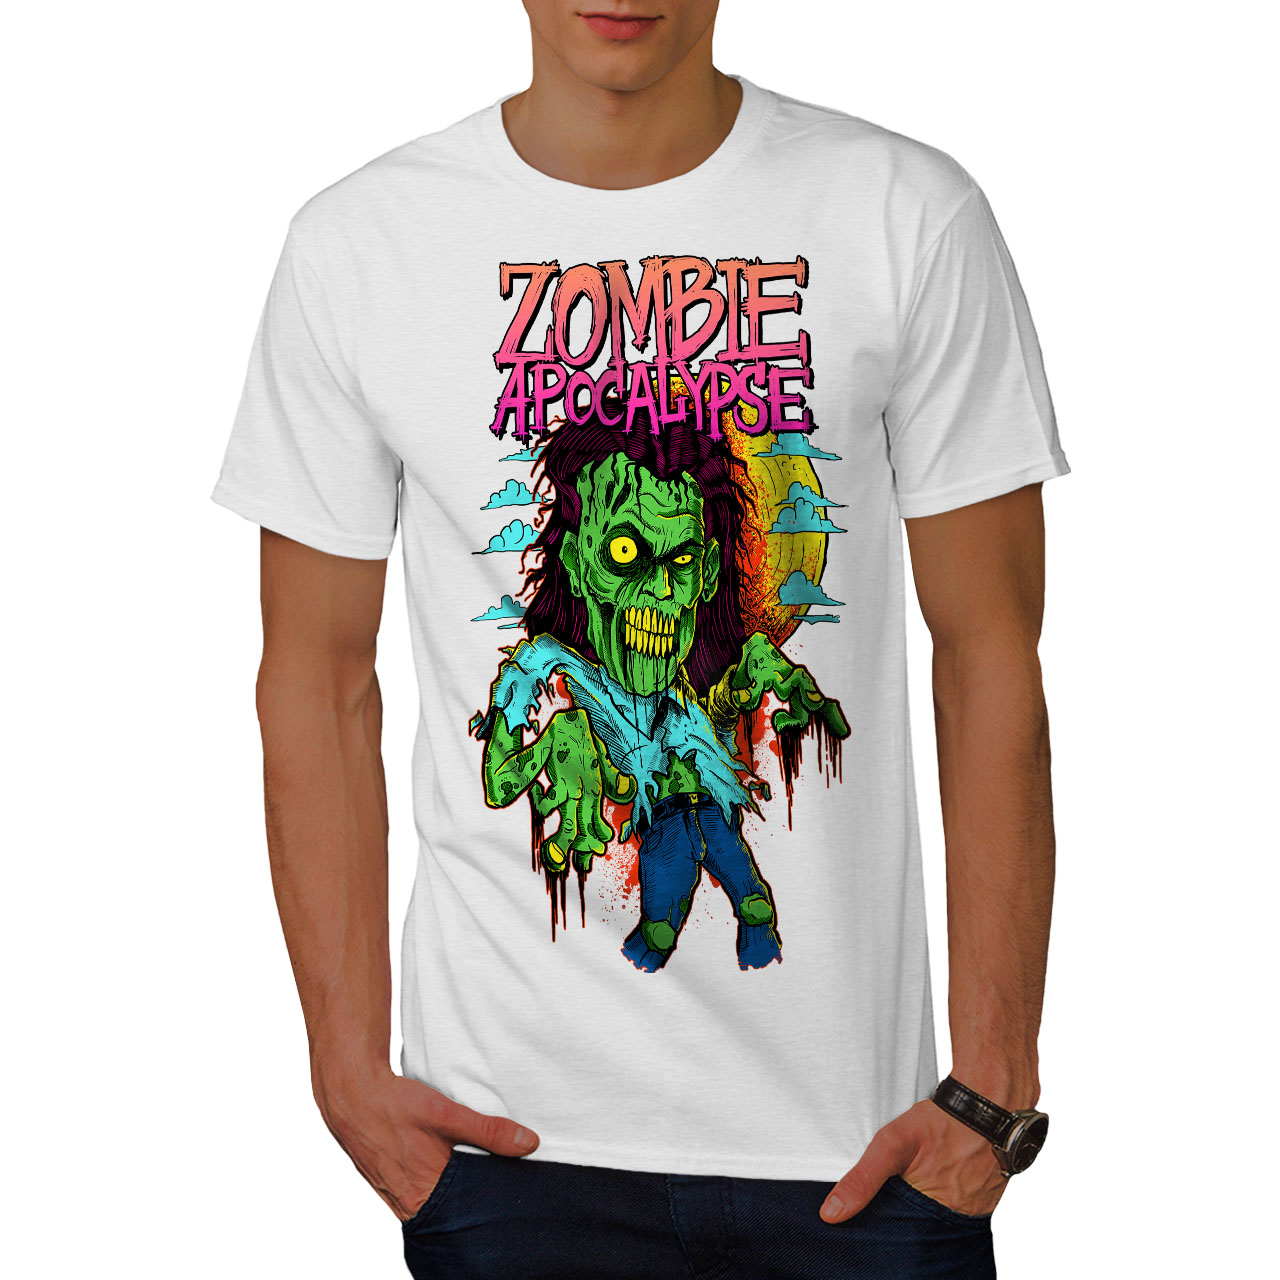 Wellcoda-Zombie-Apocalypse-Horror-Mens-T-shirt-Graphic-Design-Printed-Tee thumbnail 9